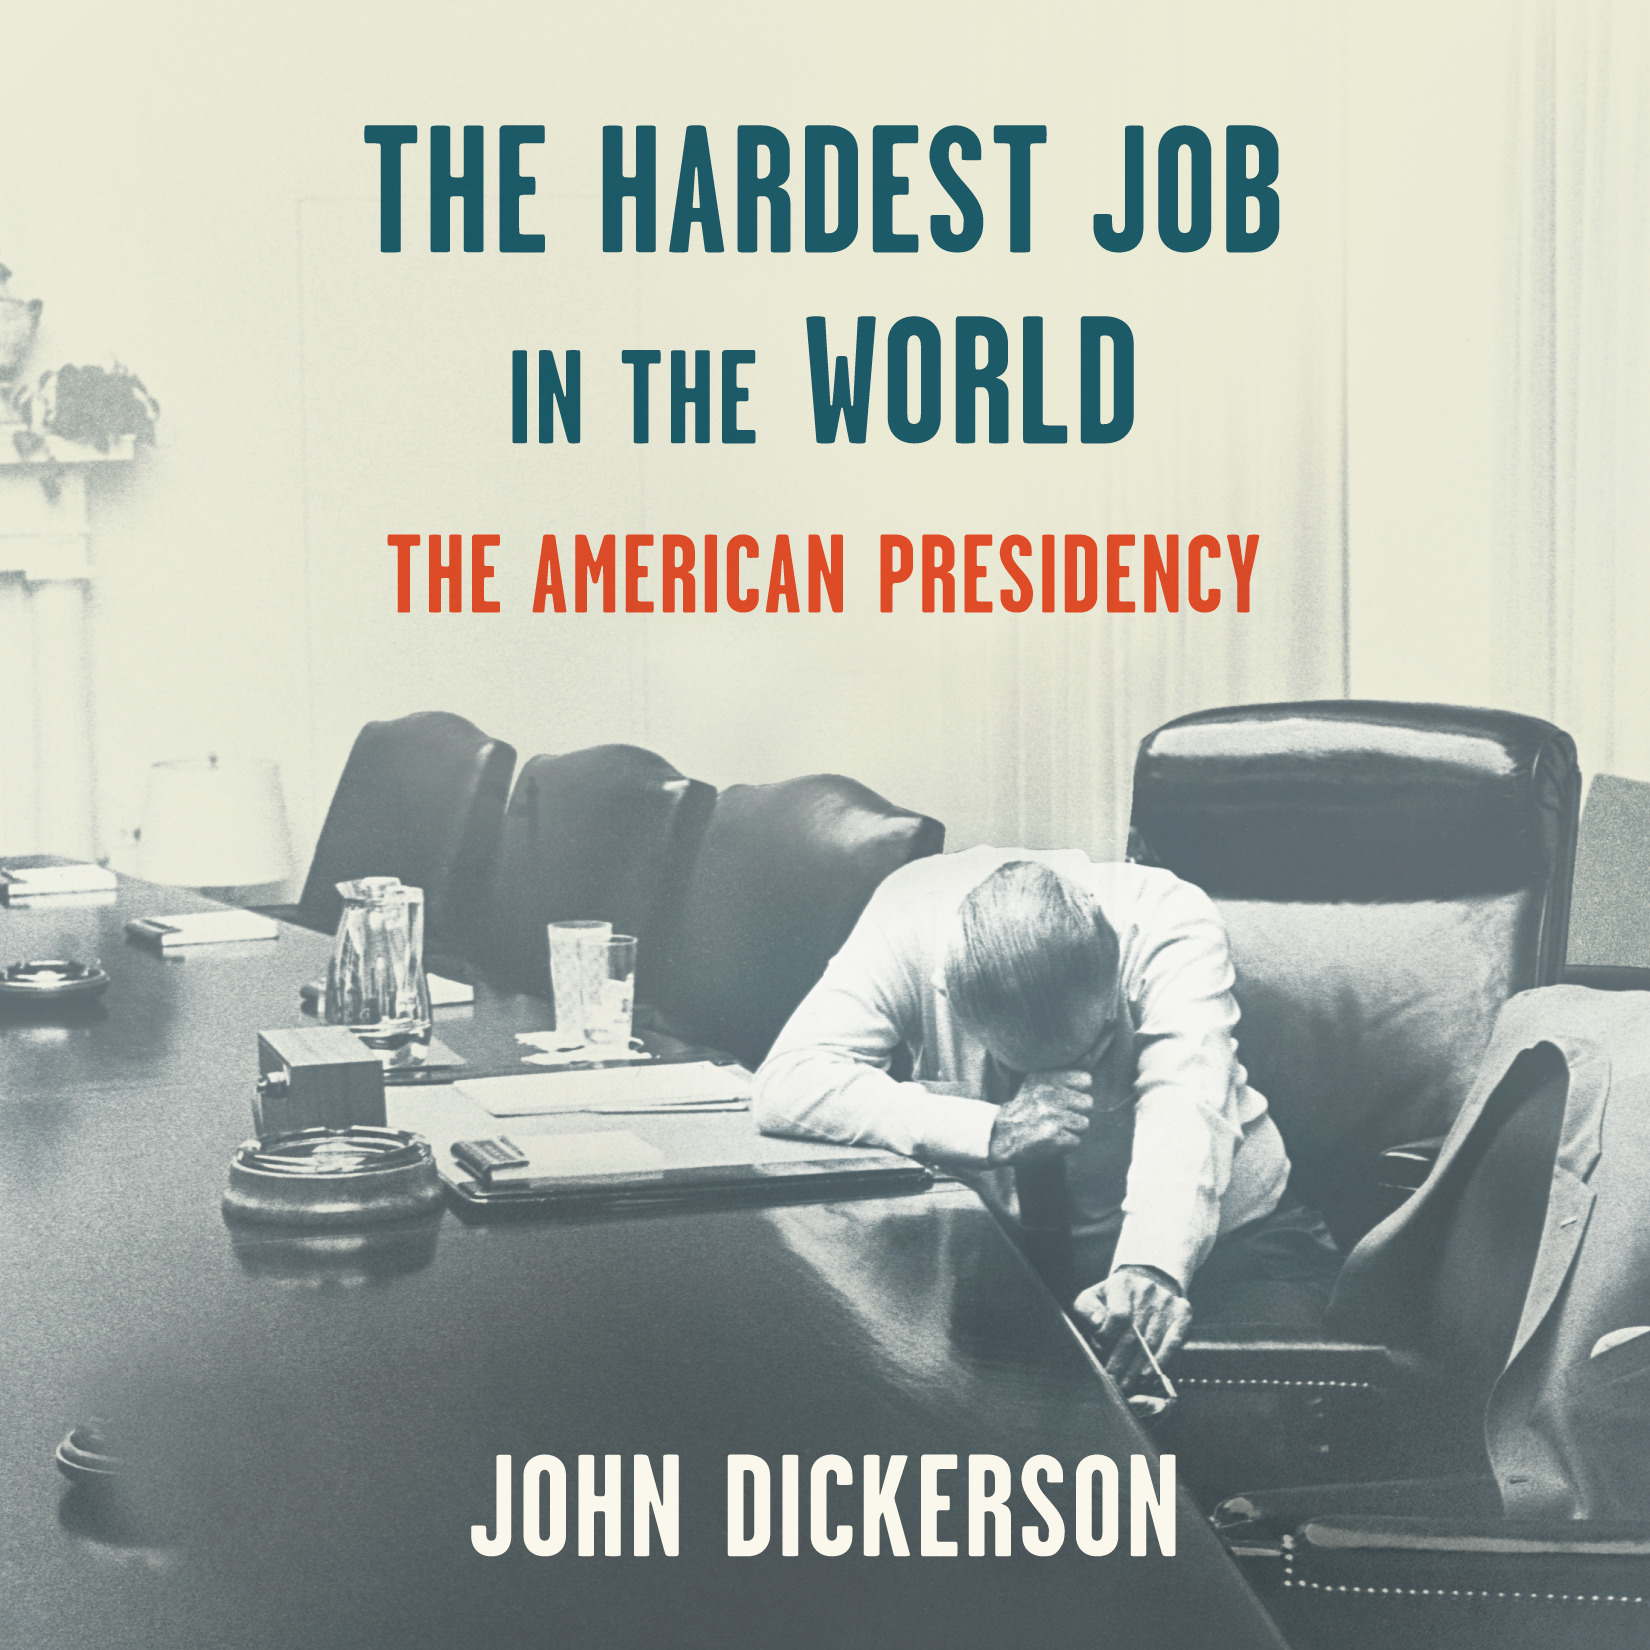 image for The Hardest Job in the World: The American Presidency